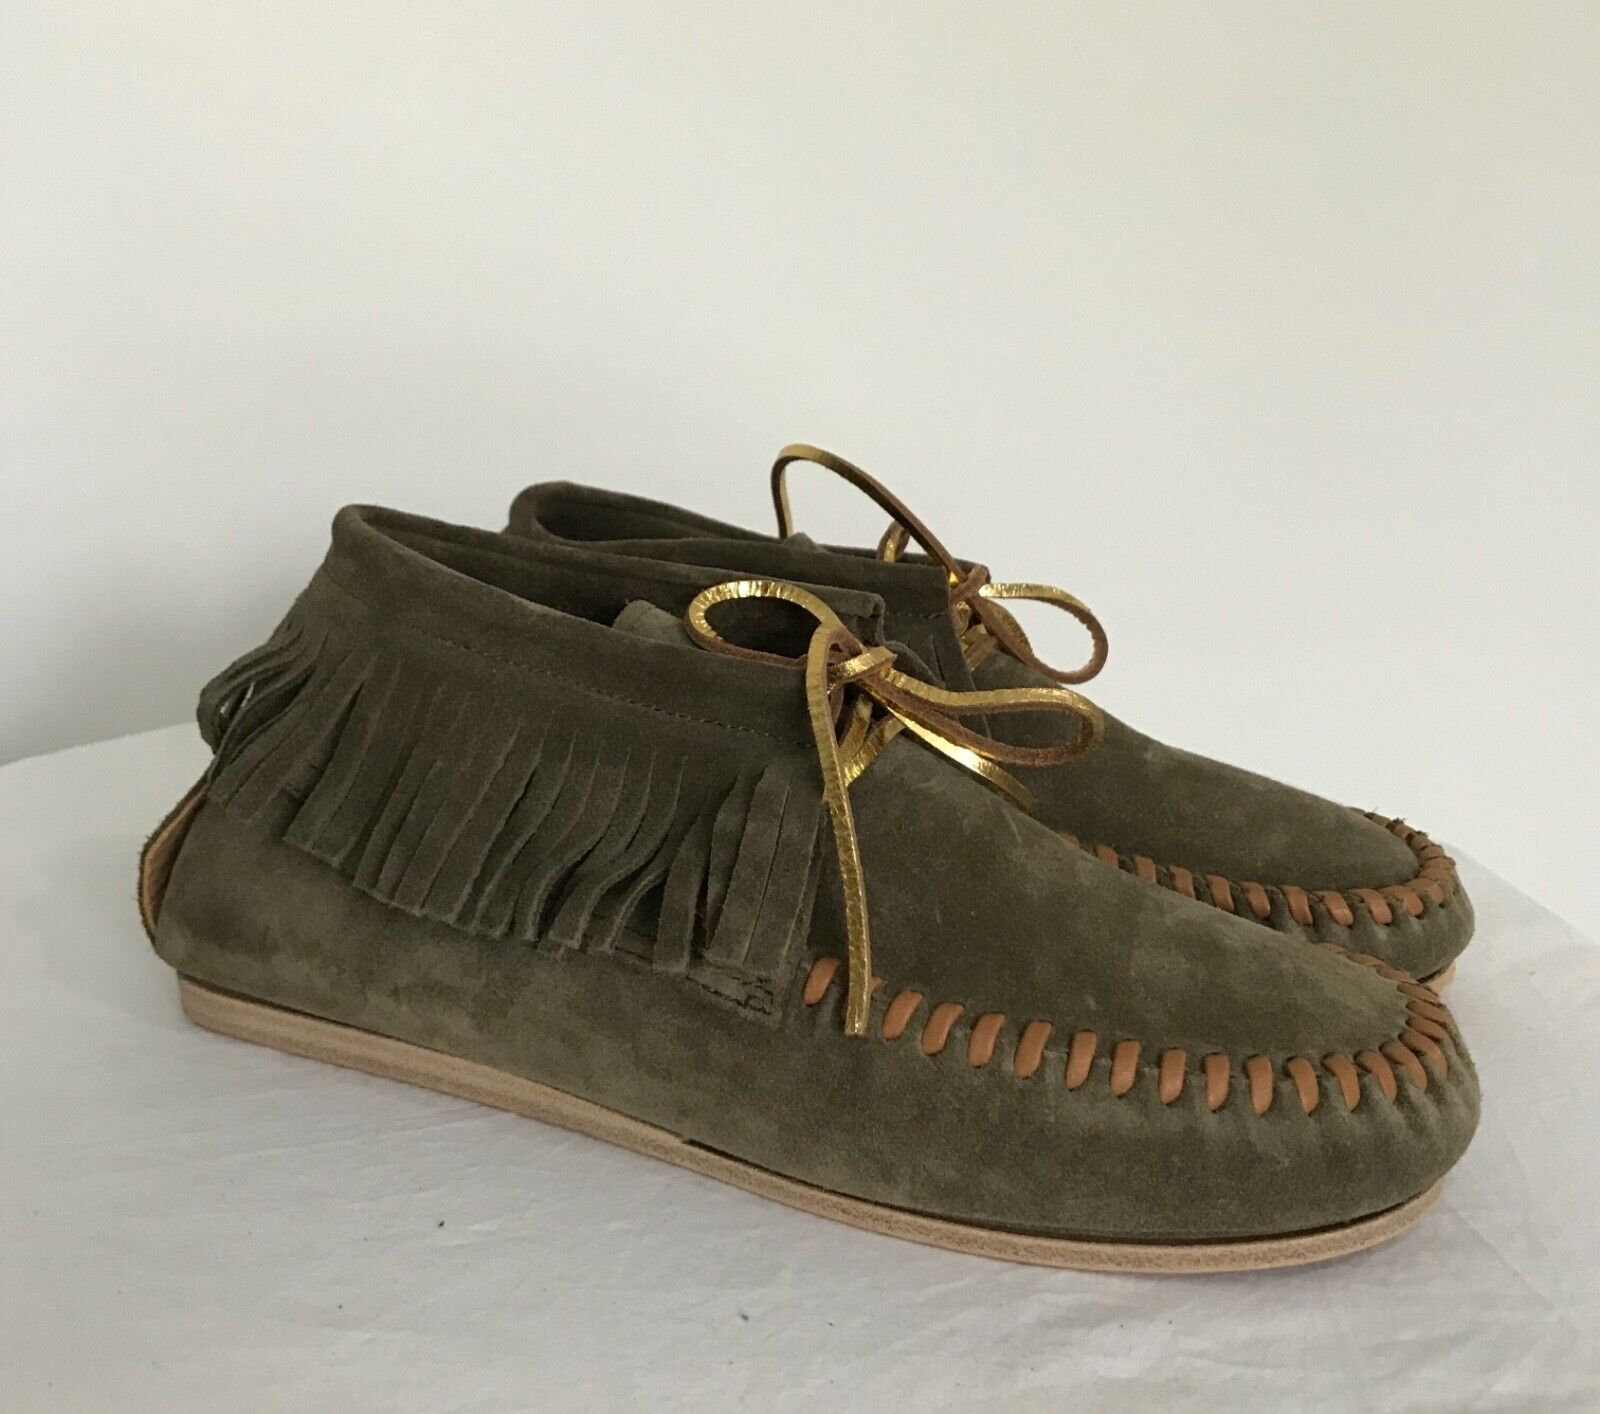 NEW Anthropologie CLOSED Moccasins Flats Size 38 Green Suede shoes